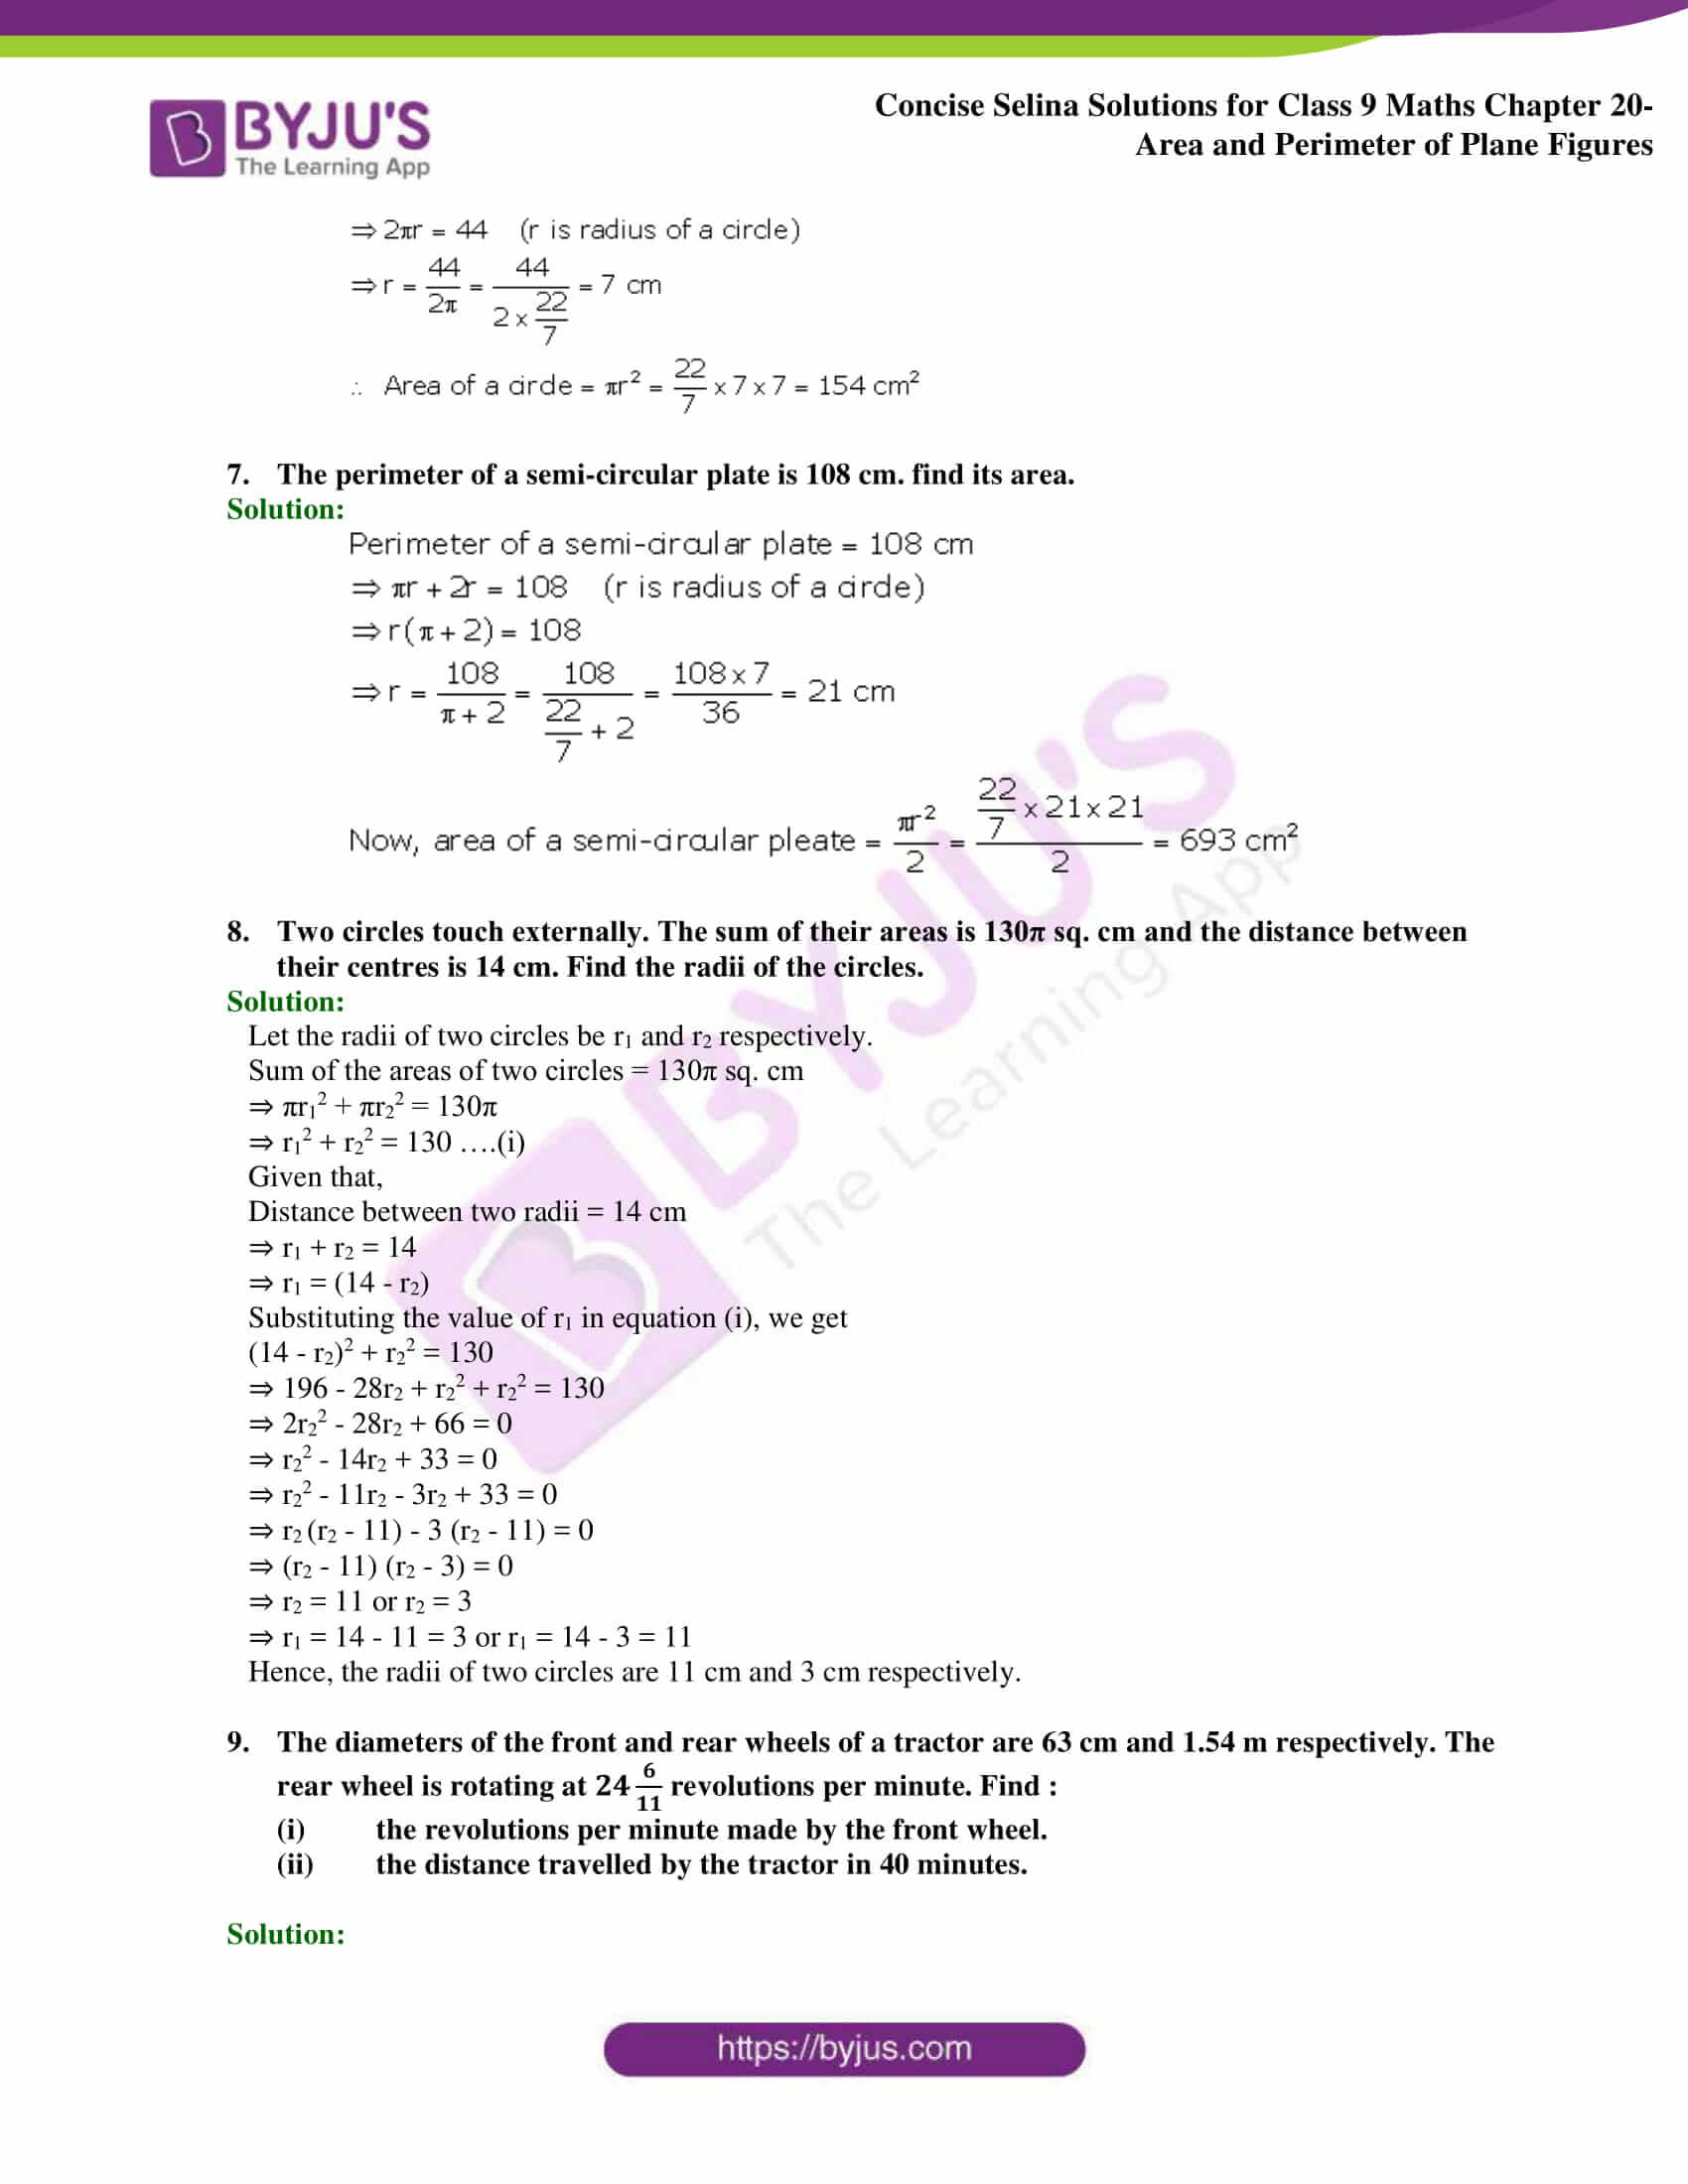 Concise Selina Solutions Class 9 Maths Chapter 20 Area and Perimeter of Plane part 48